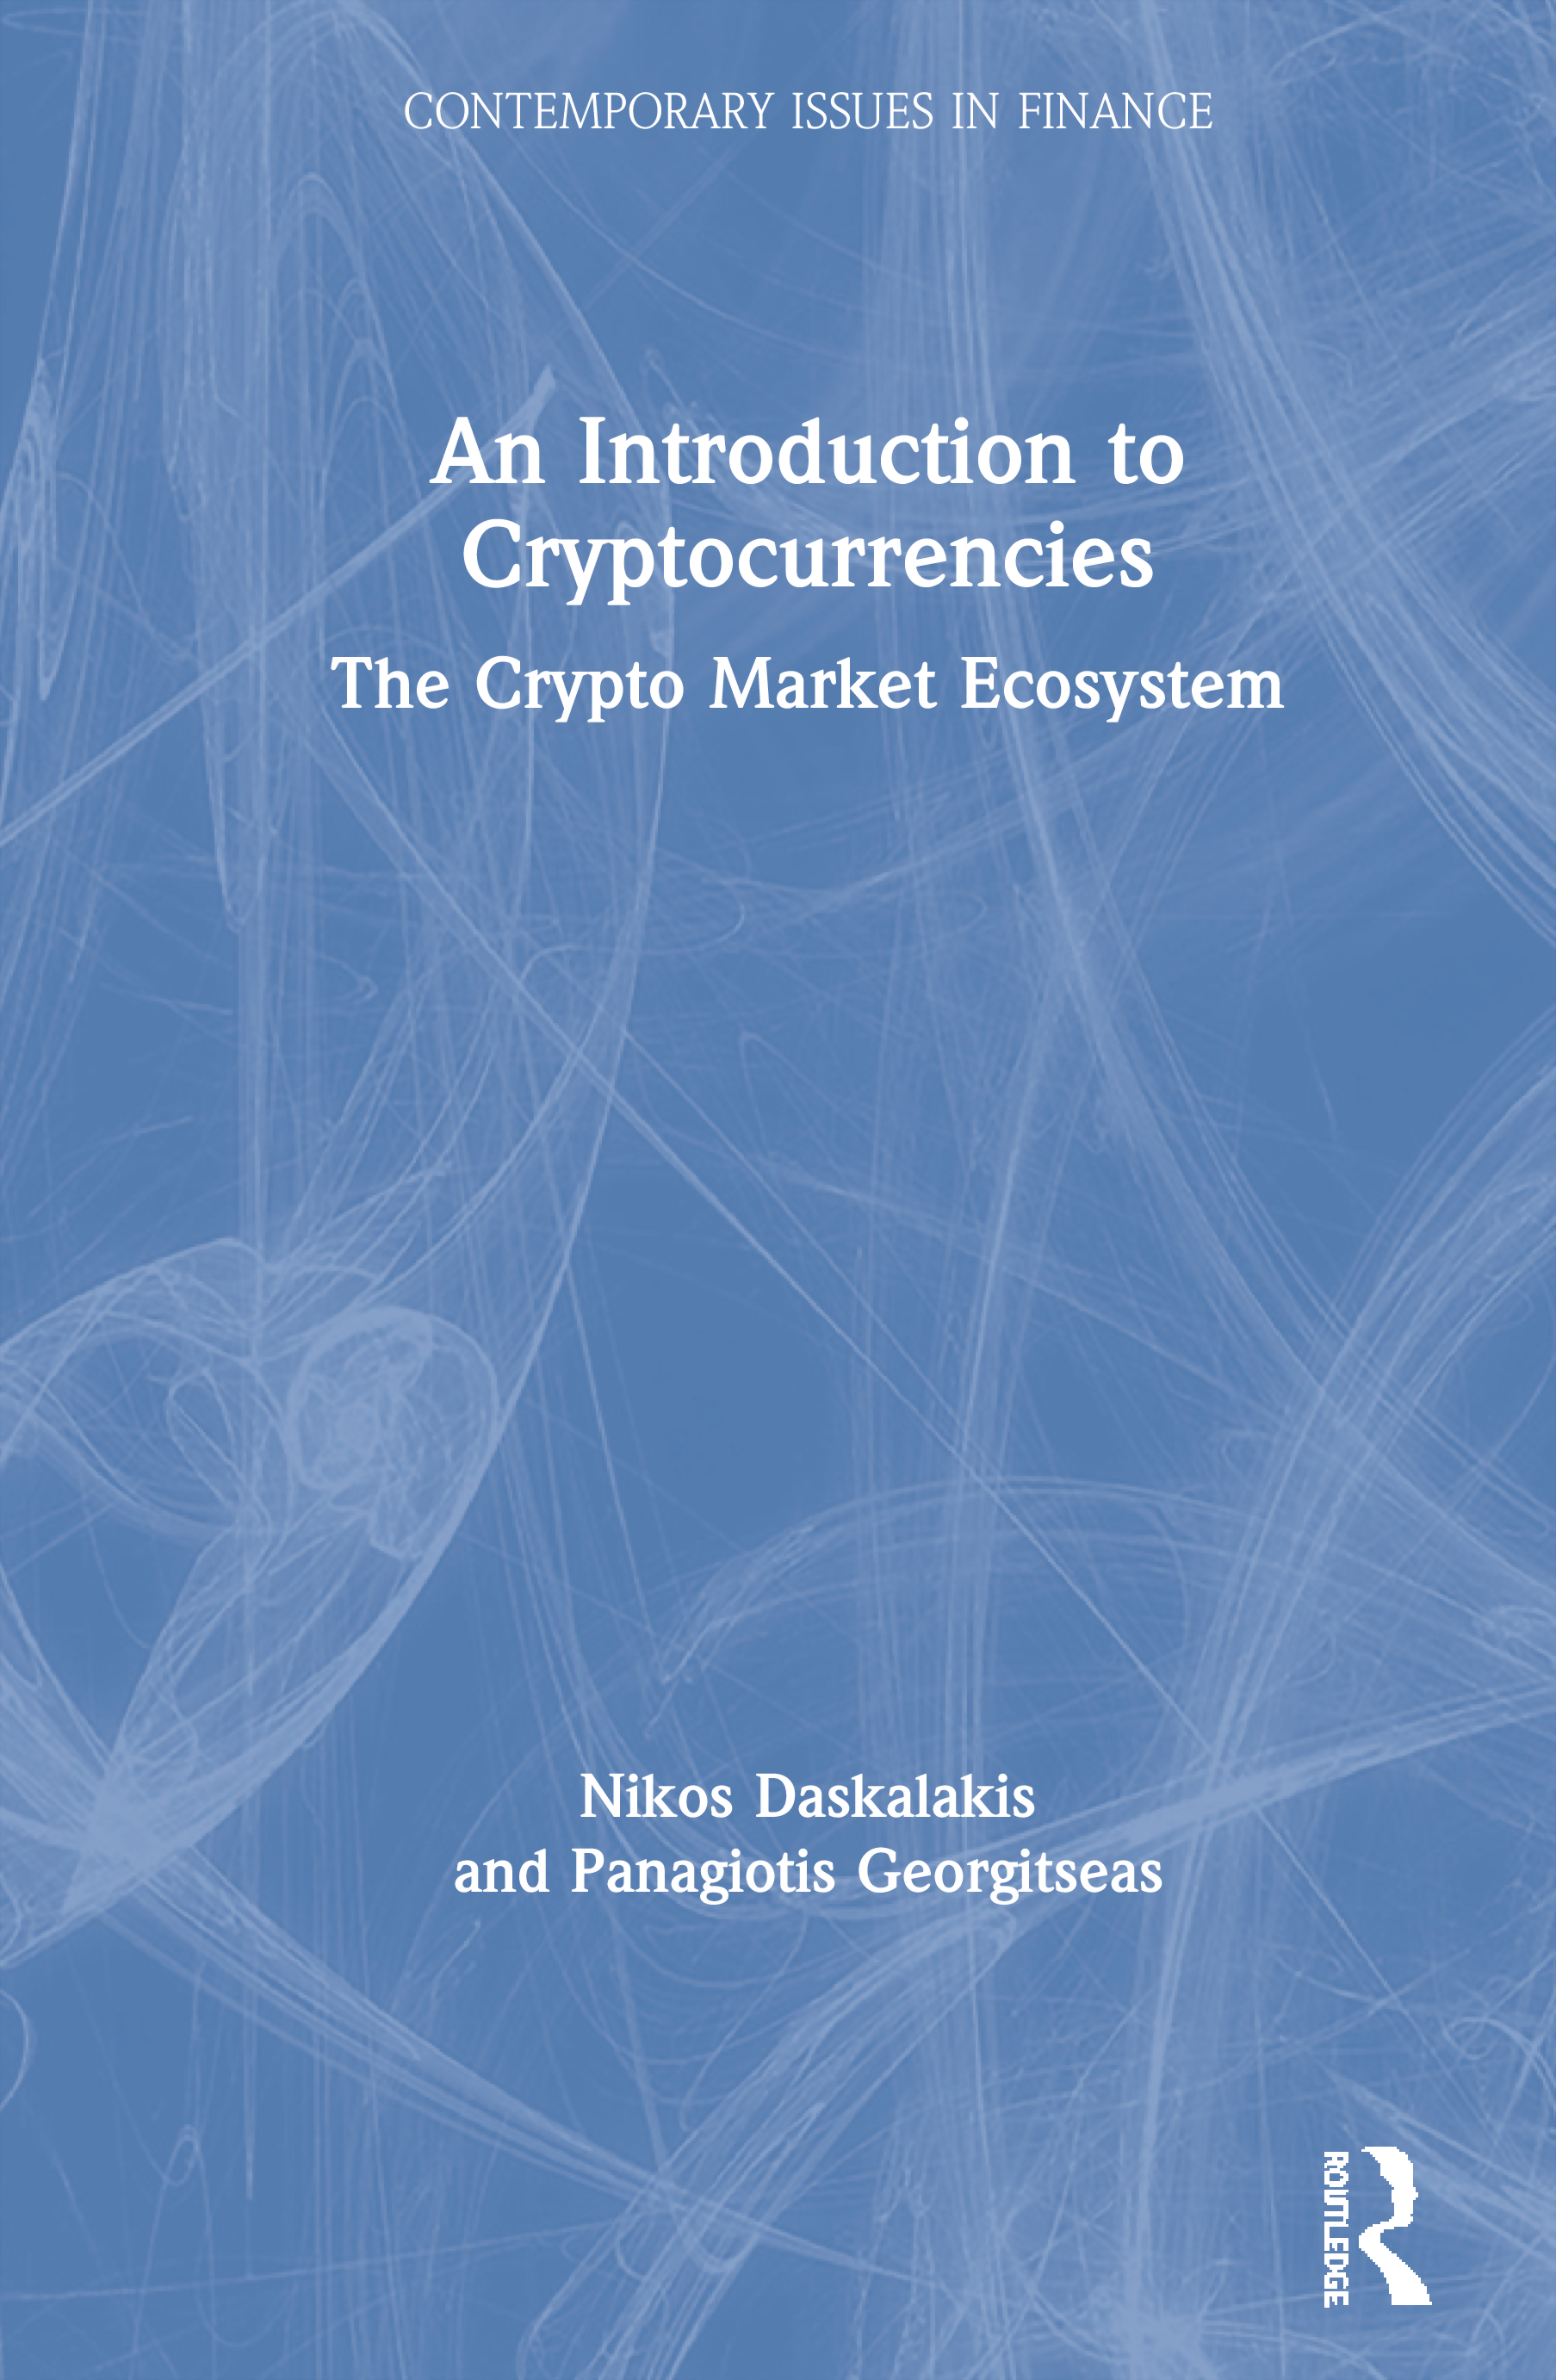 An Introduction to Cryptocurrencies: The Crypto Market Ecosystem book cover